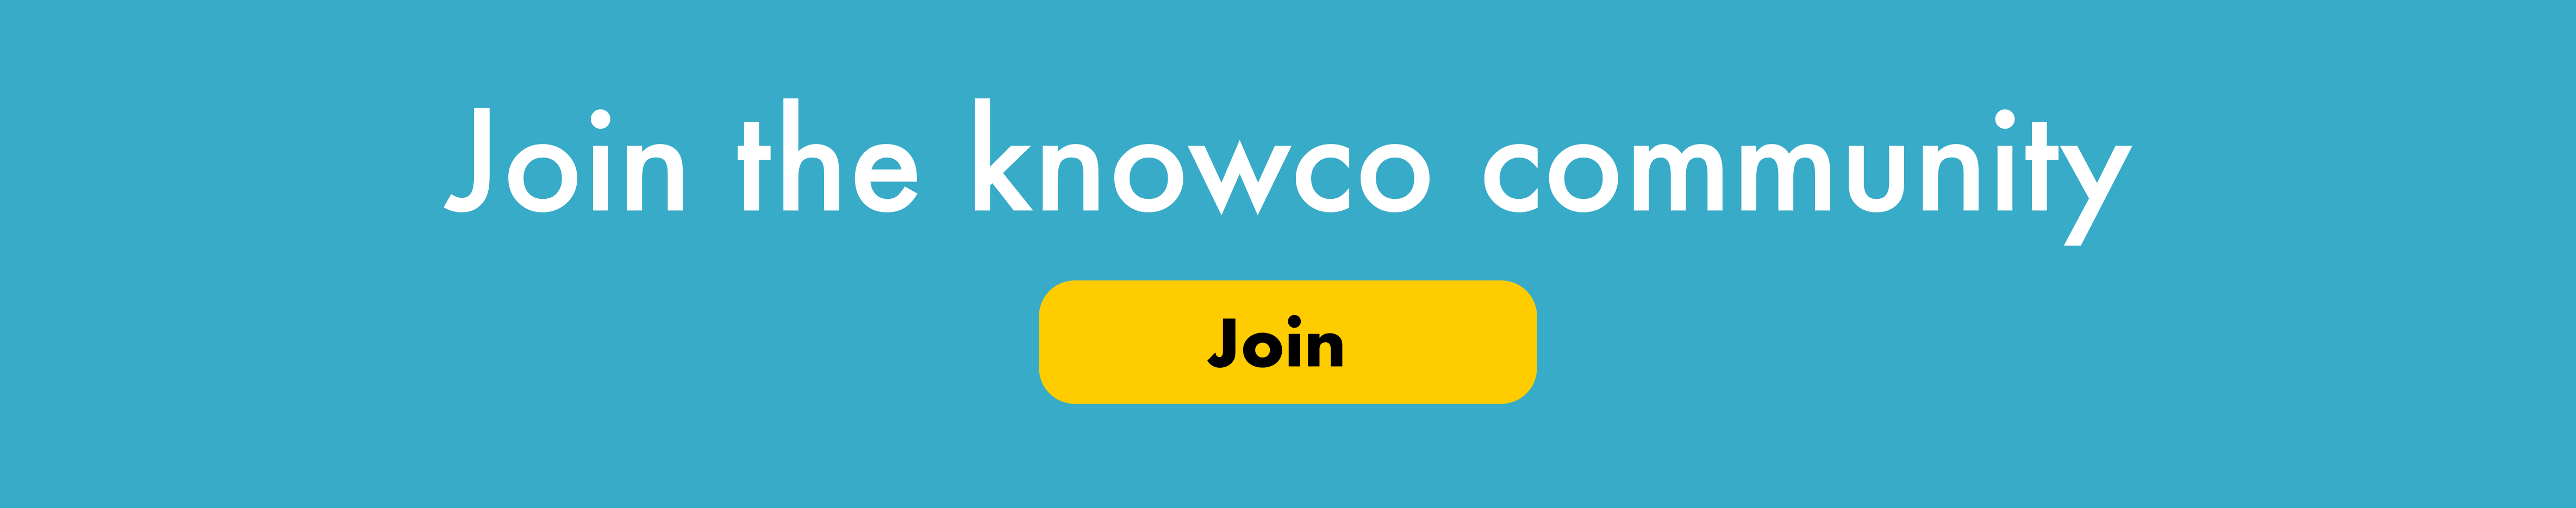 Join the knowco community